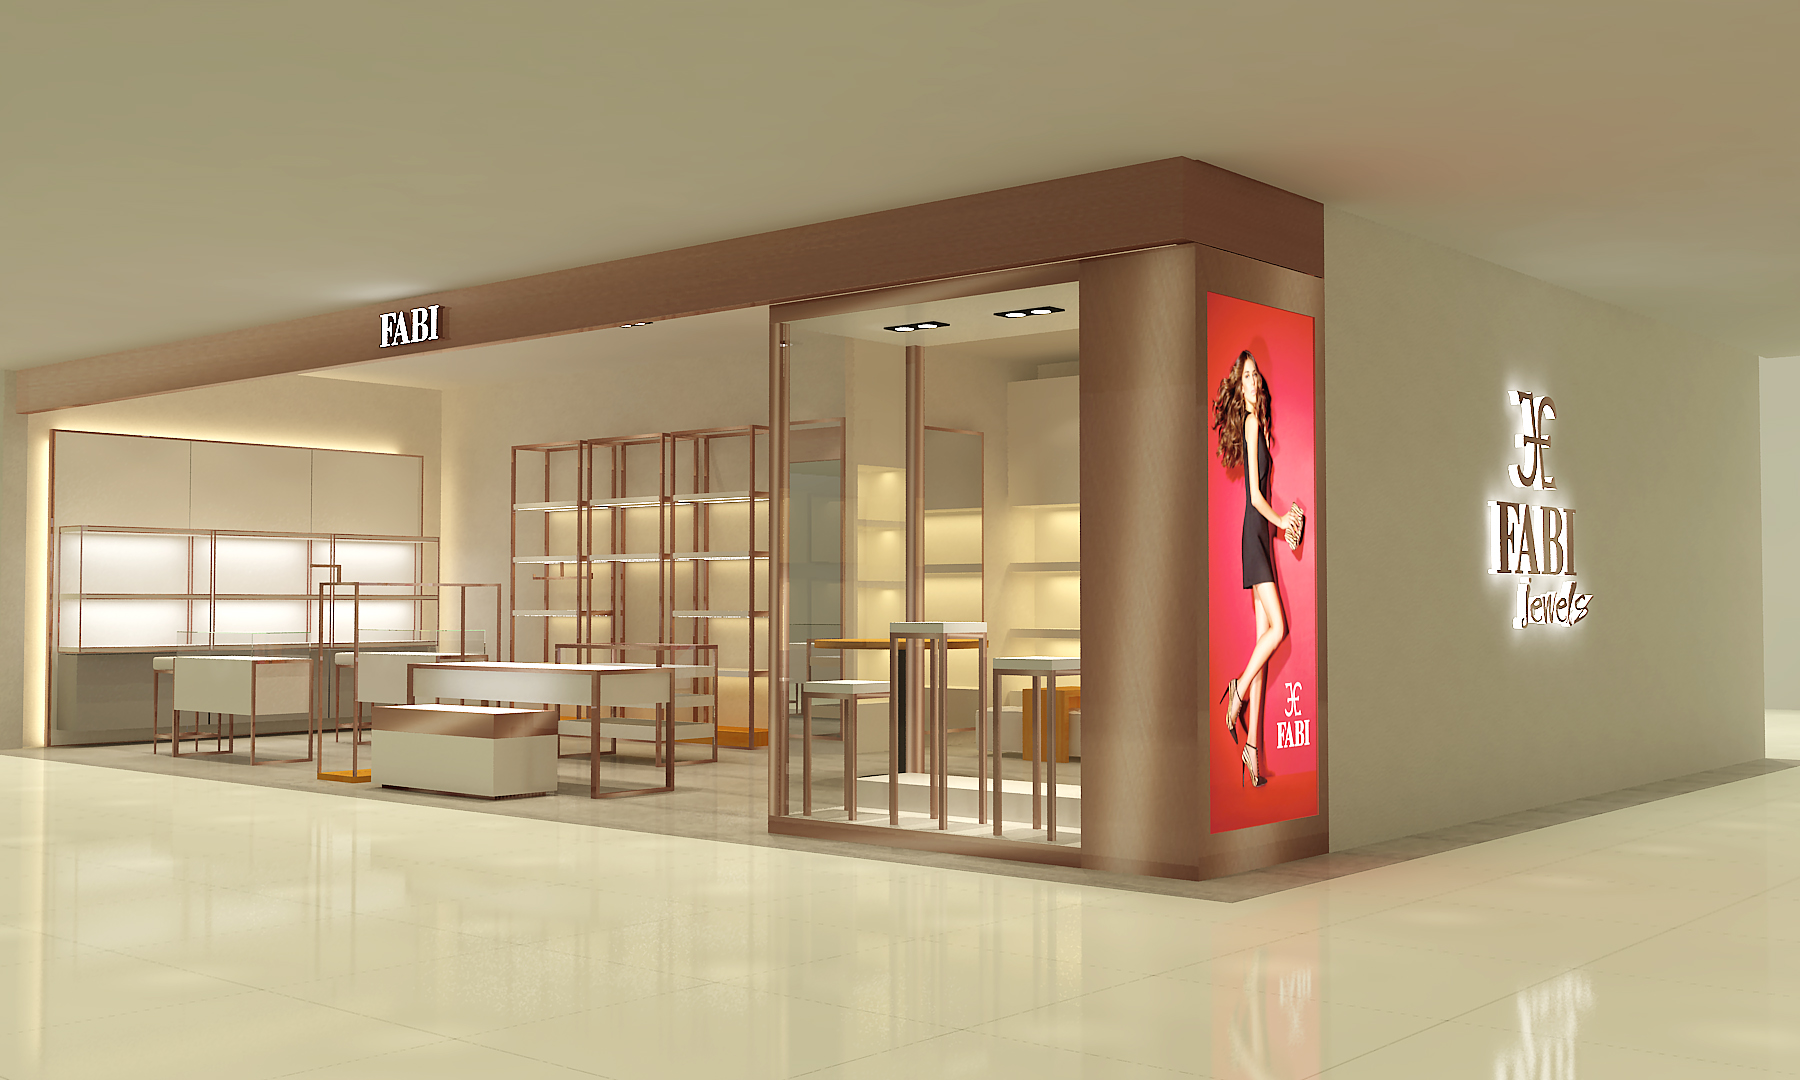 FABI Jewels Shops is brass pipeline style retail project, which is very popular for clothing & handbag shops.